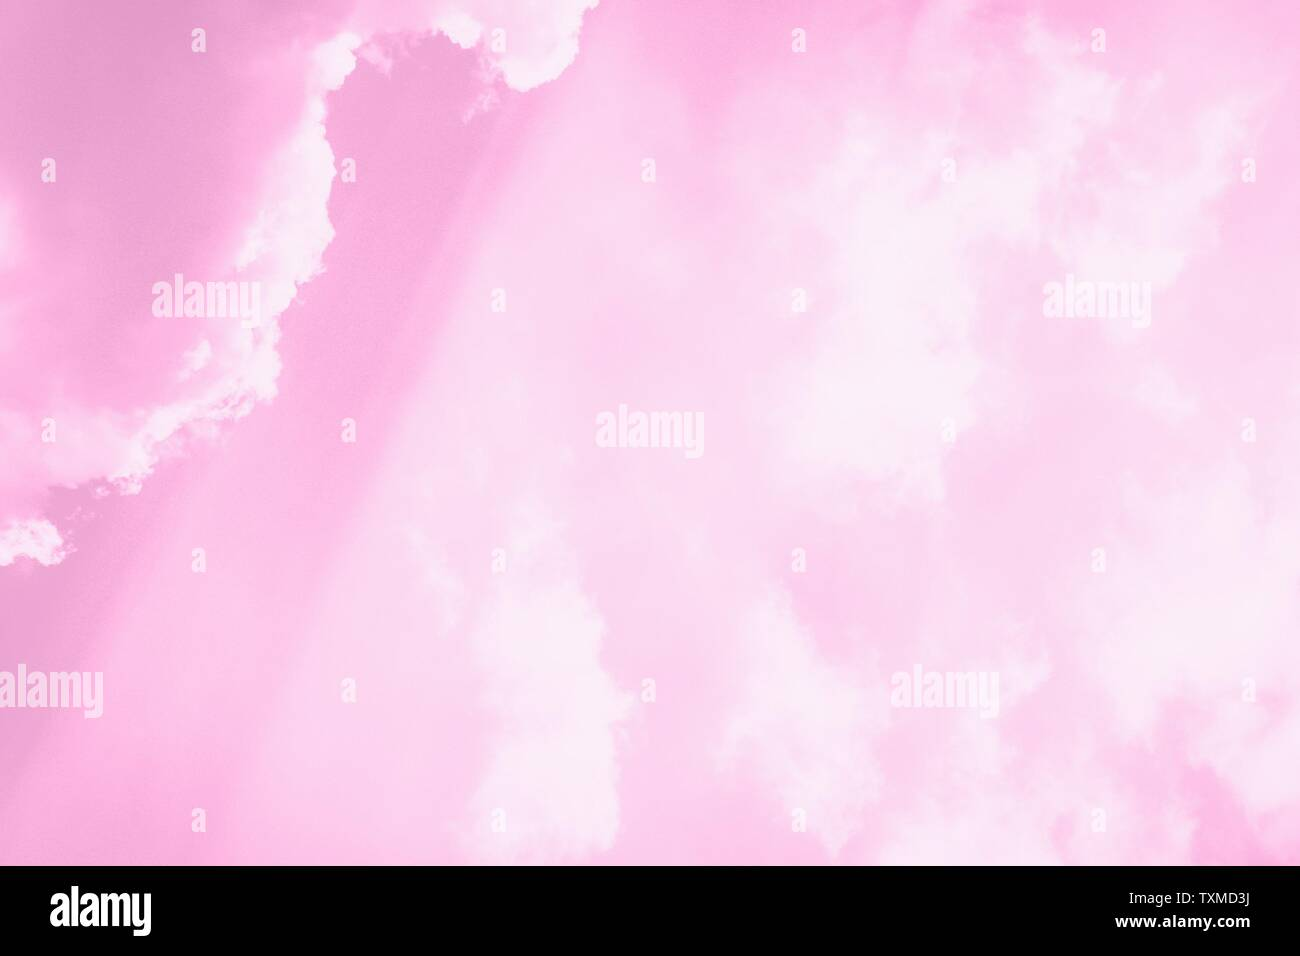 Beautiful white soft fluffy clouds on a sky background. Sunlight, light and shadow. Pink, copy space - Stock Image